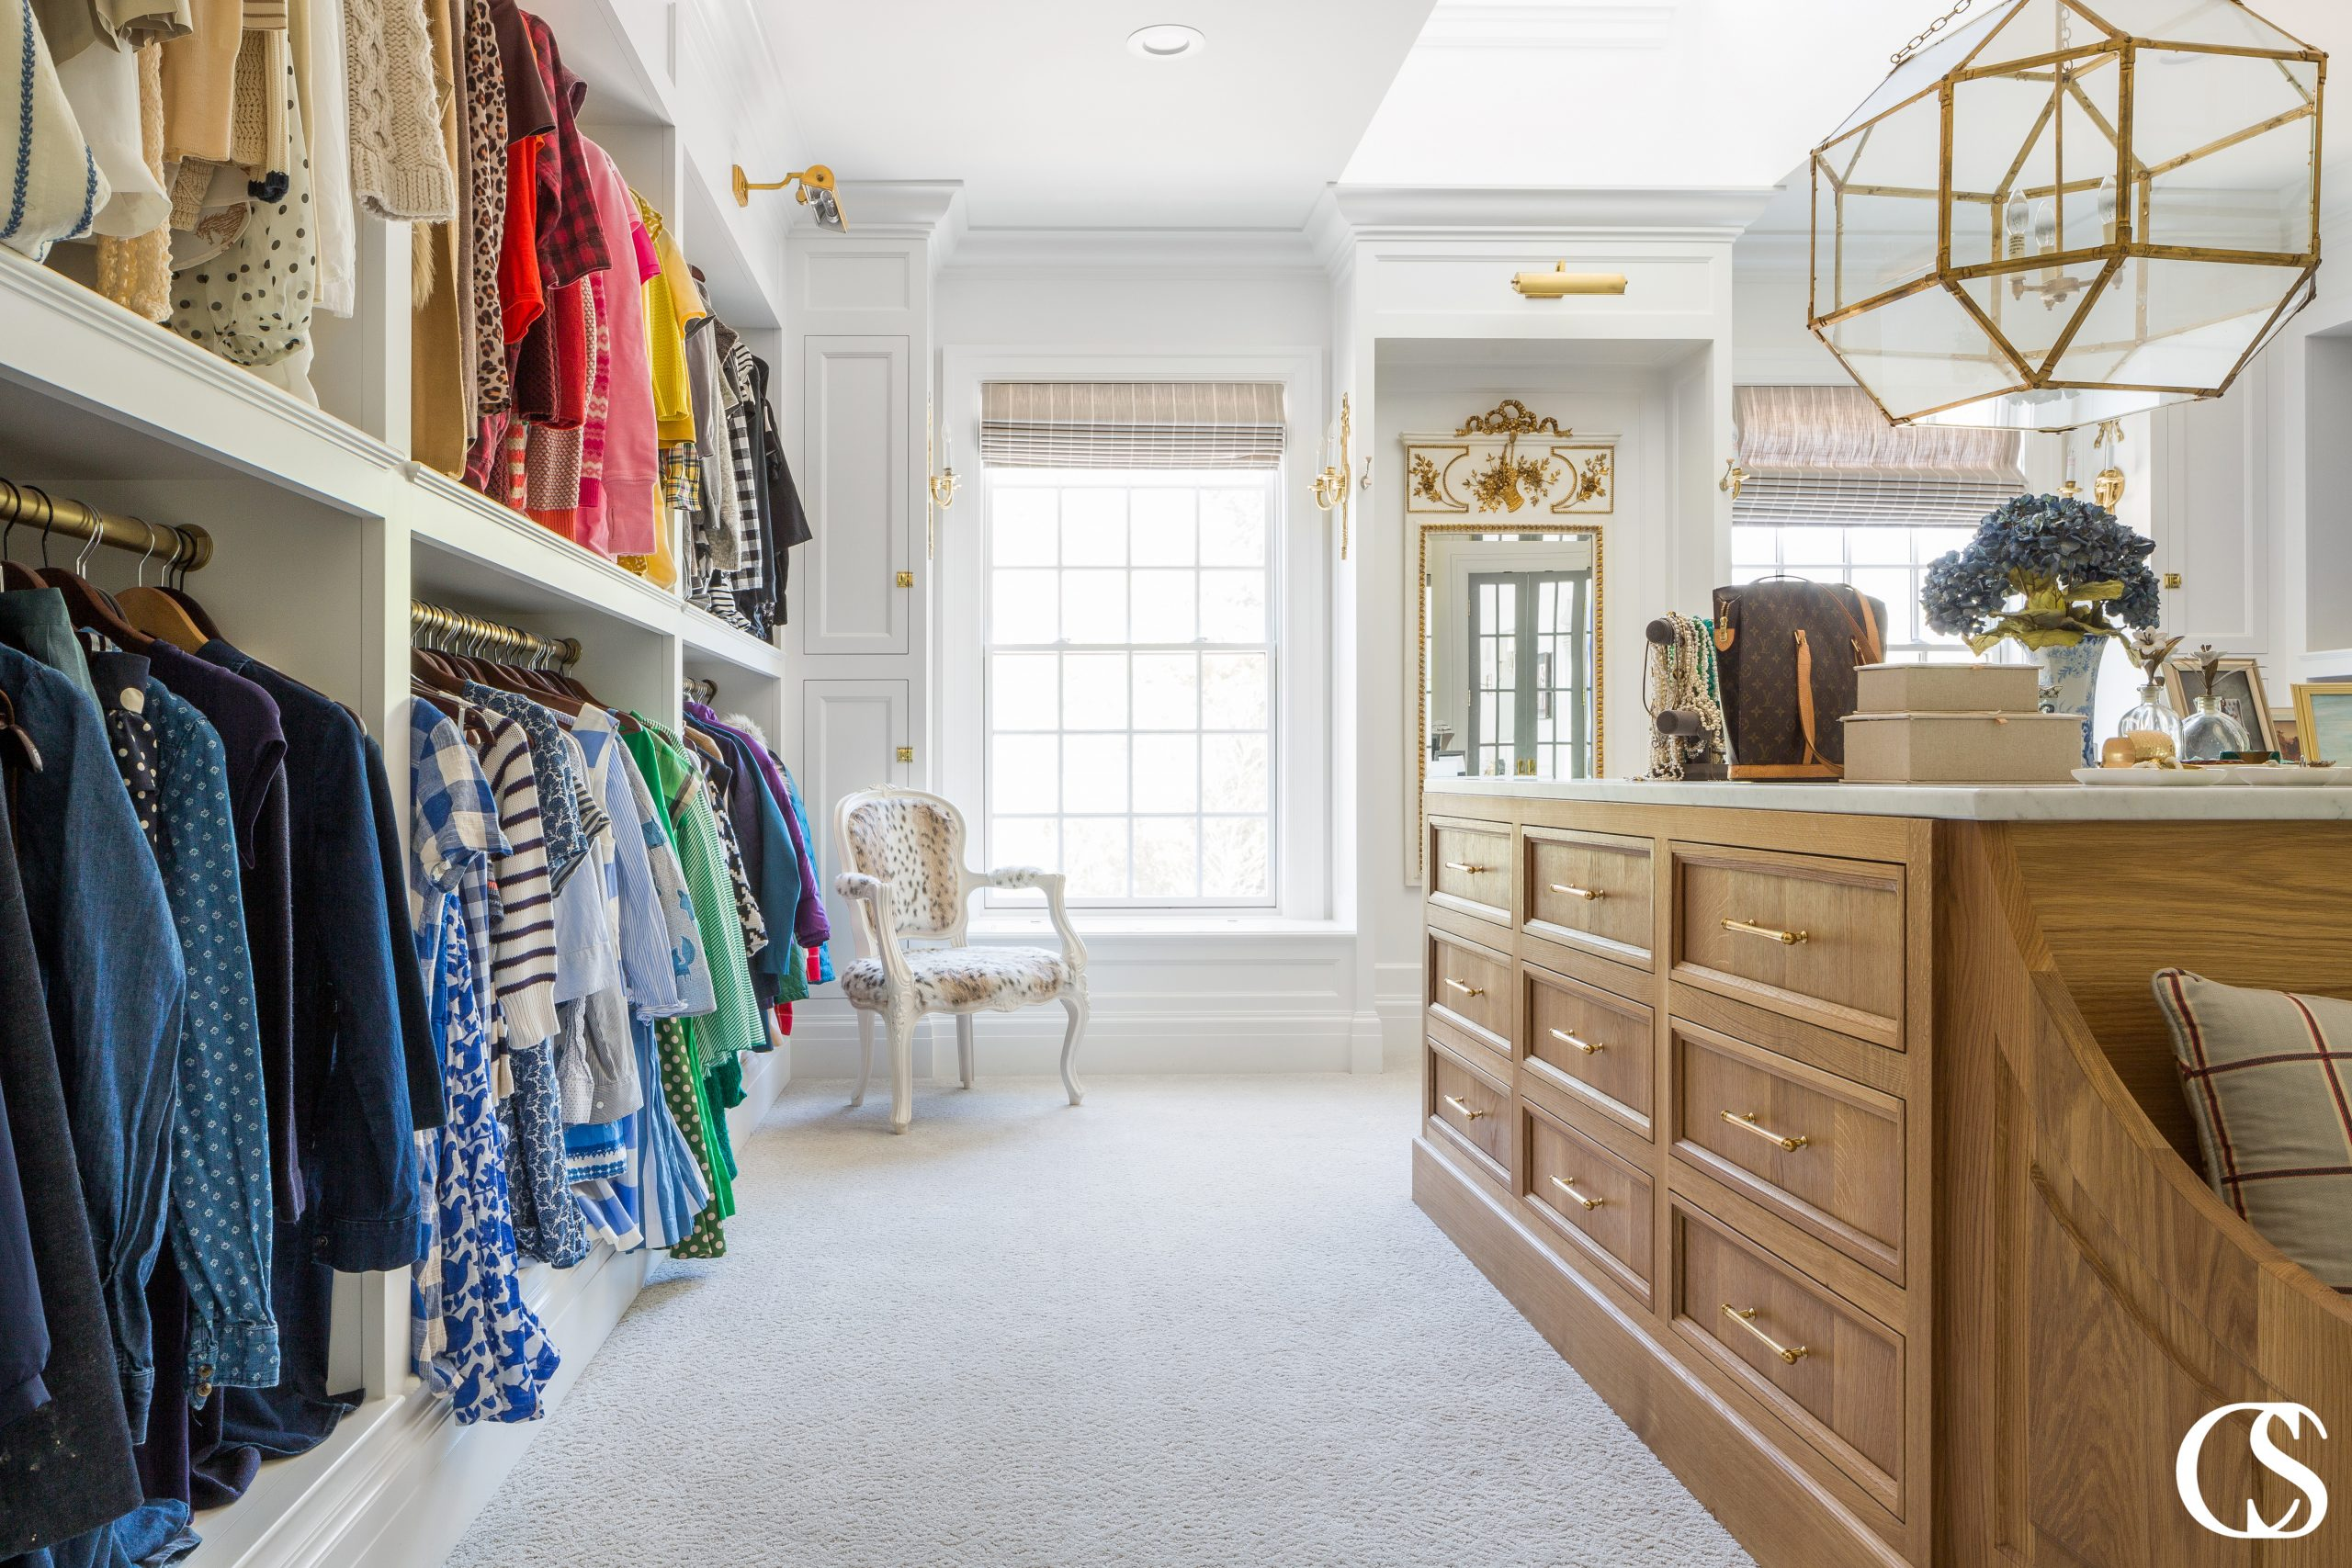 One thing you should never feel when walking into a custom closet design is that you're, well, in a closet. It should feel more like an intimate and comfortable shopping experience!